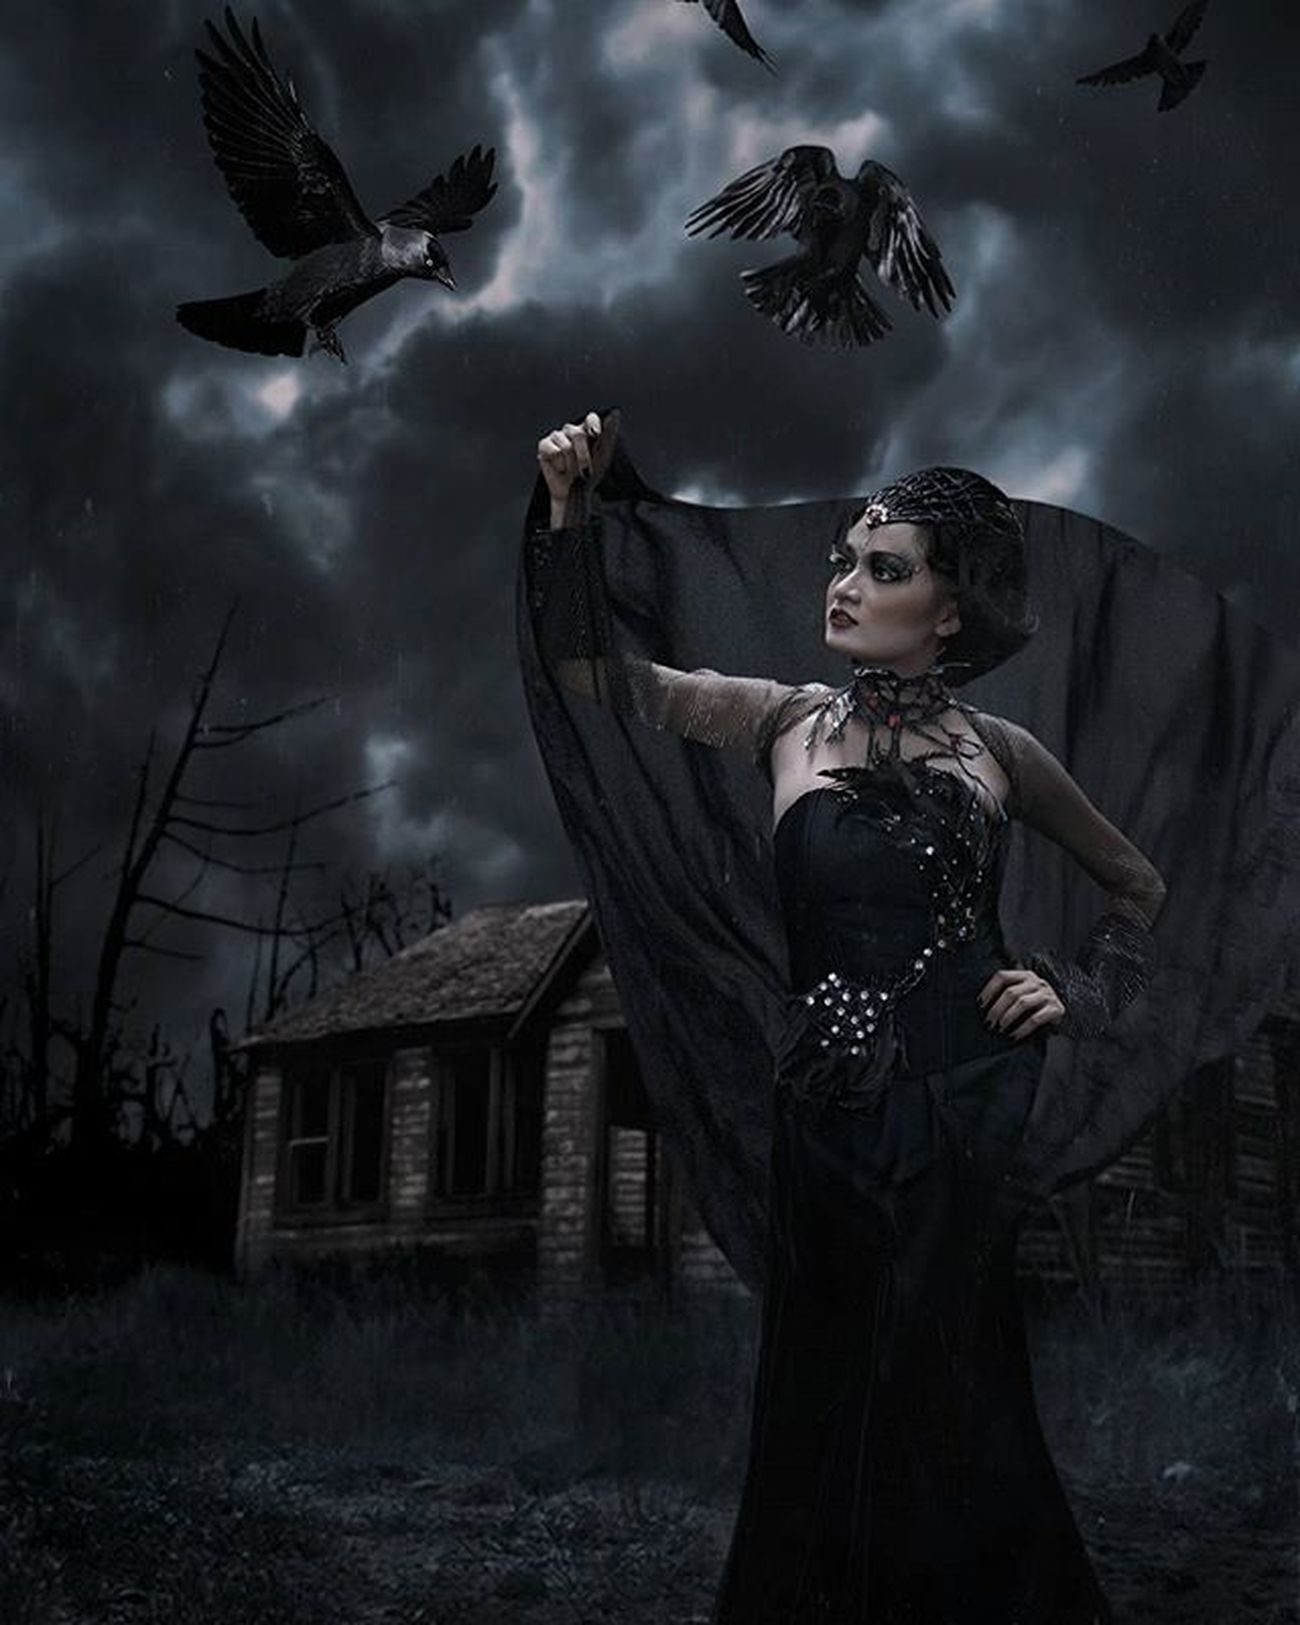 Queen of Ravens Darkscene Dark Raven Darkqueen RavenQueen Photoshop Digitalimaging Queen Darkness Huscyendra